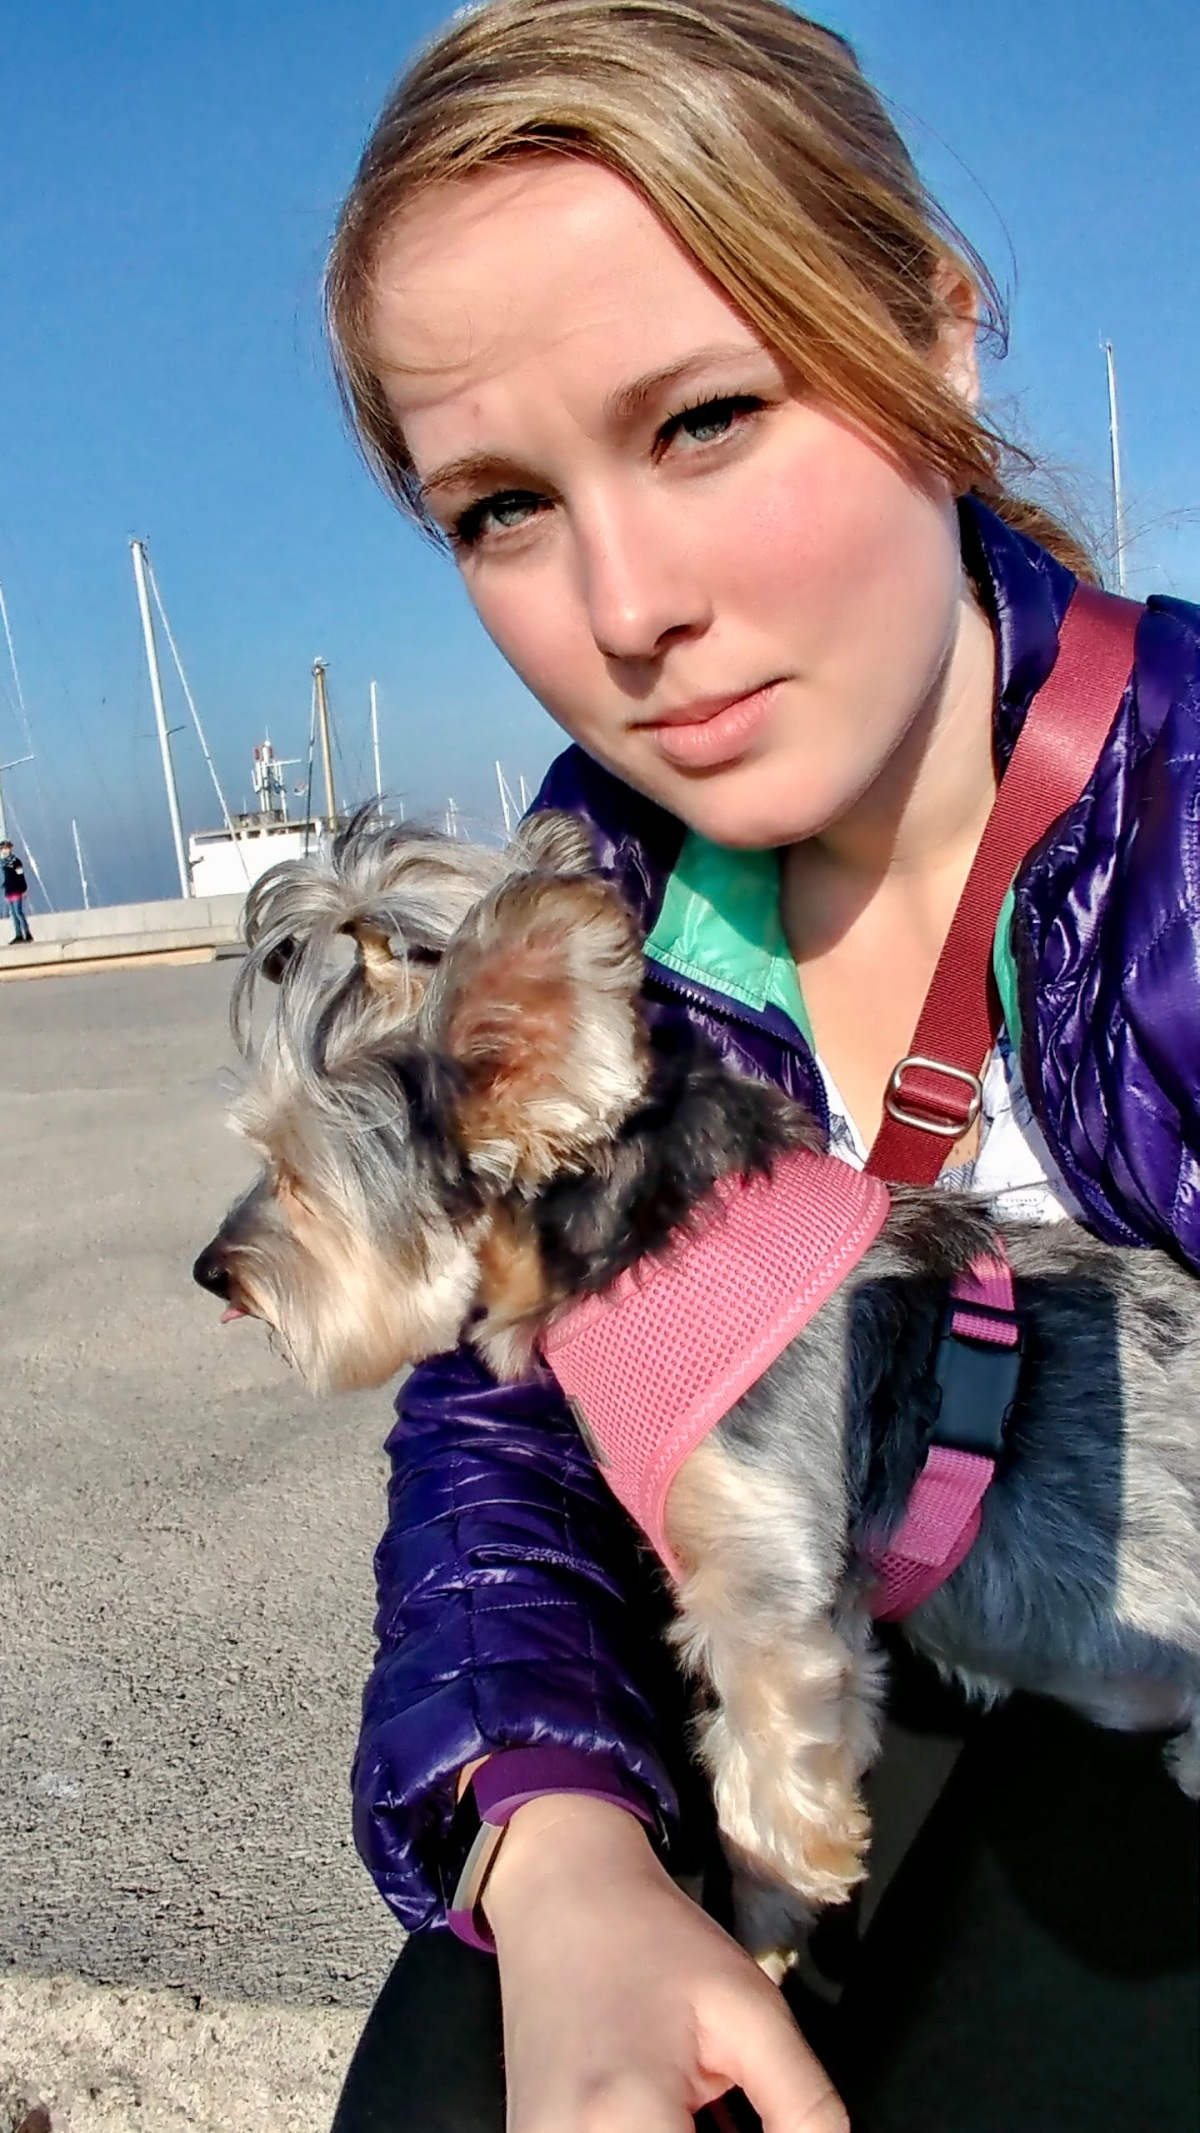 A Girl and Her Dog: The Beginning of A EuropeanAdventure